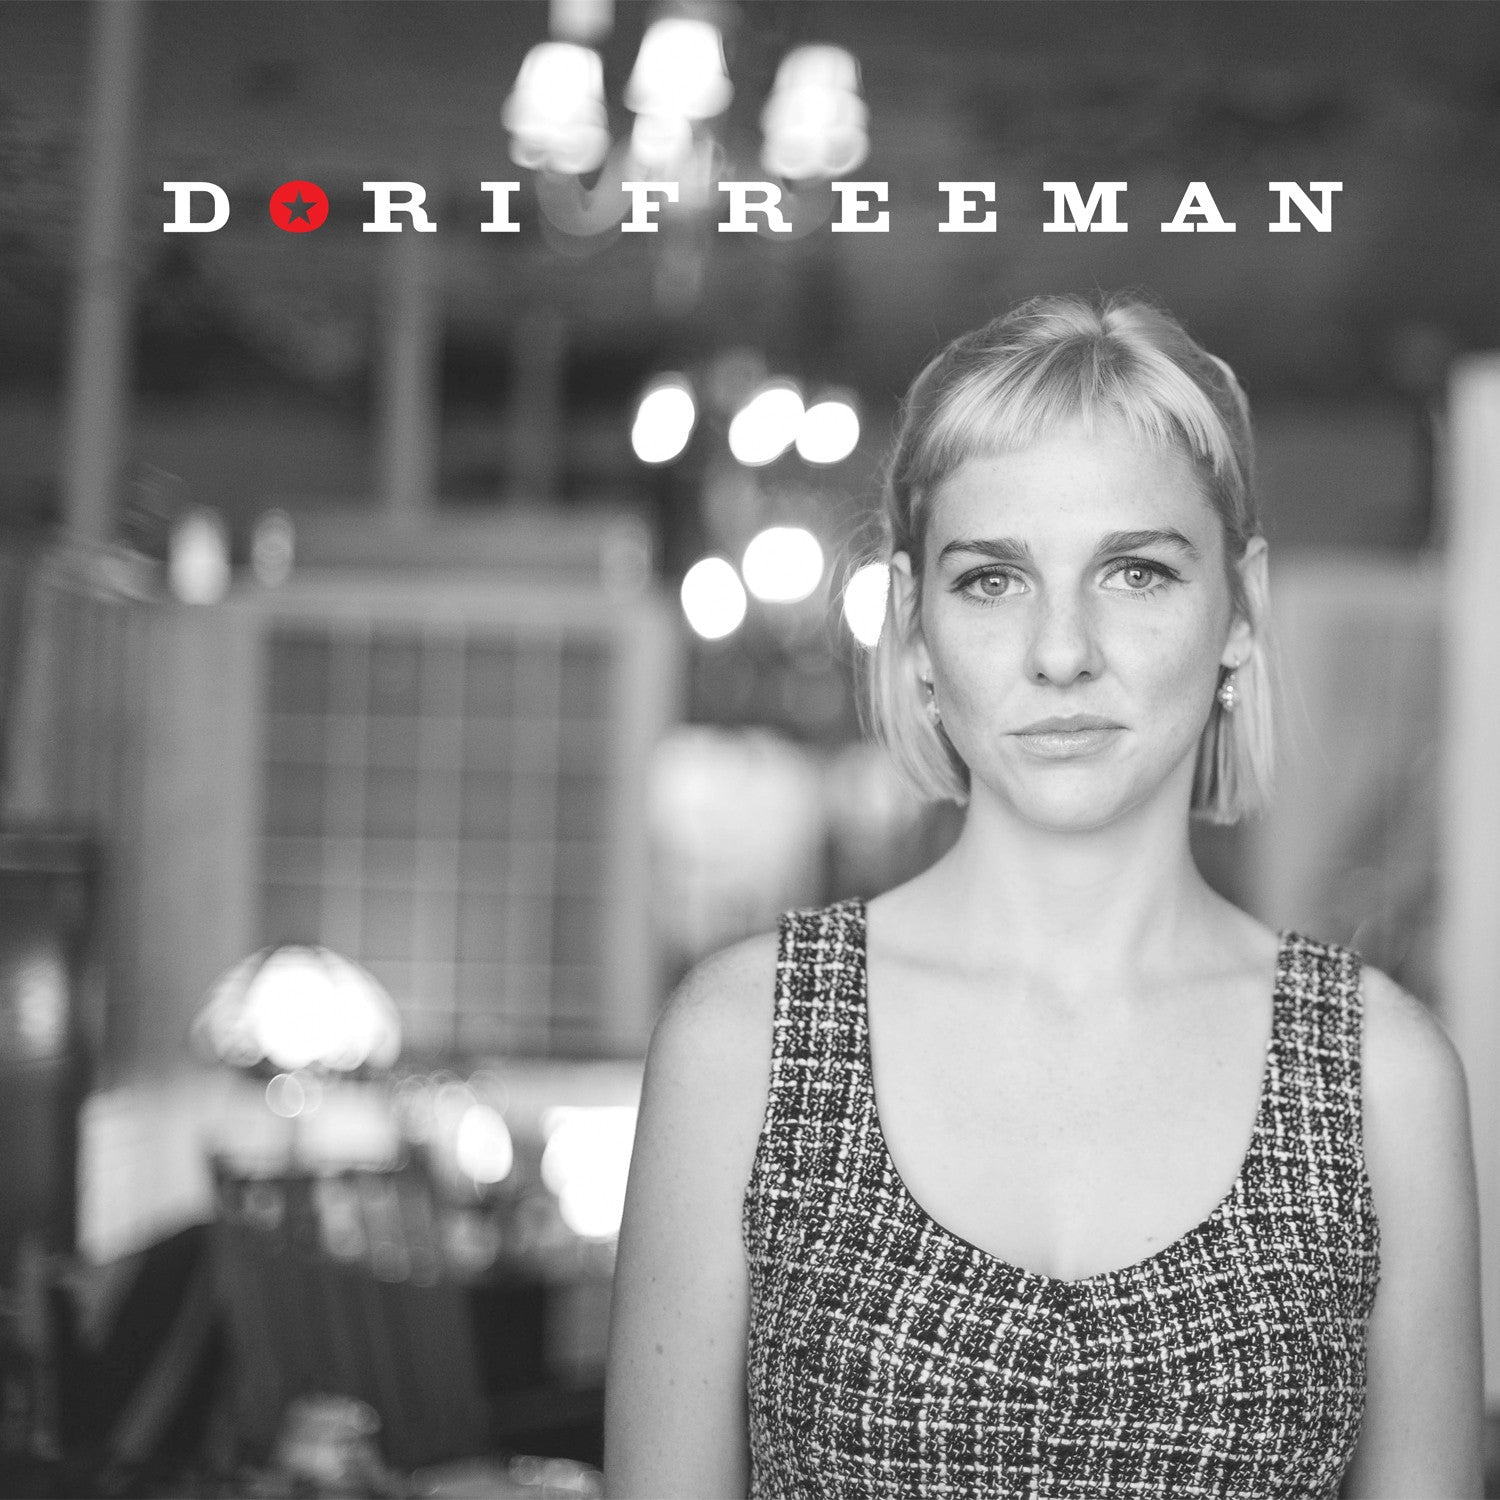 New Album From Dori Freeman Out Today!